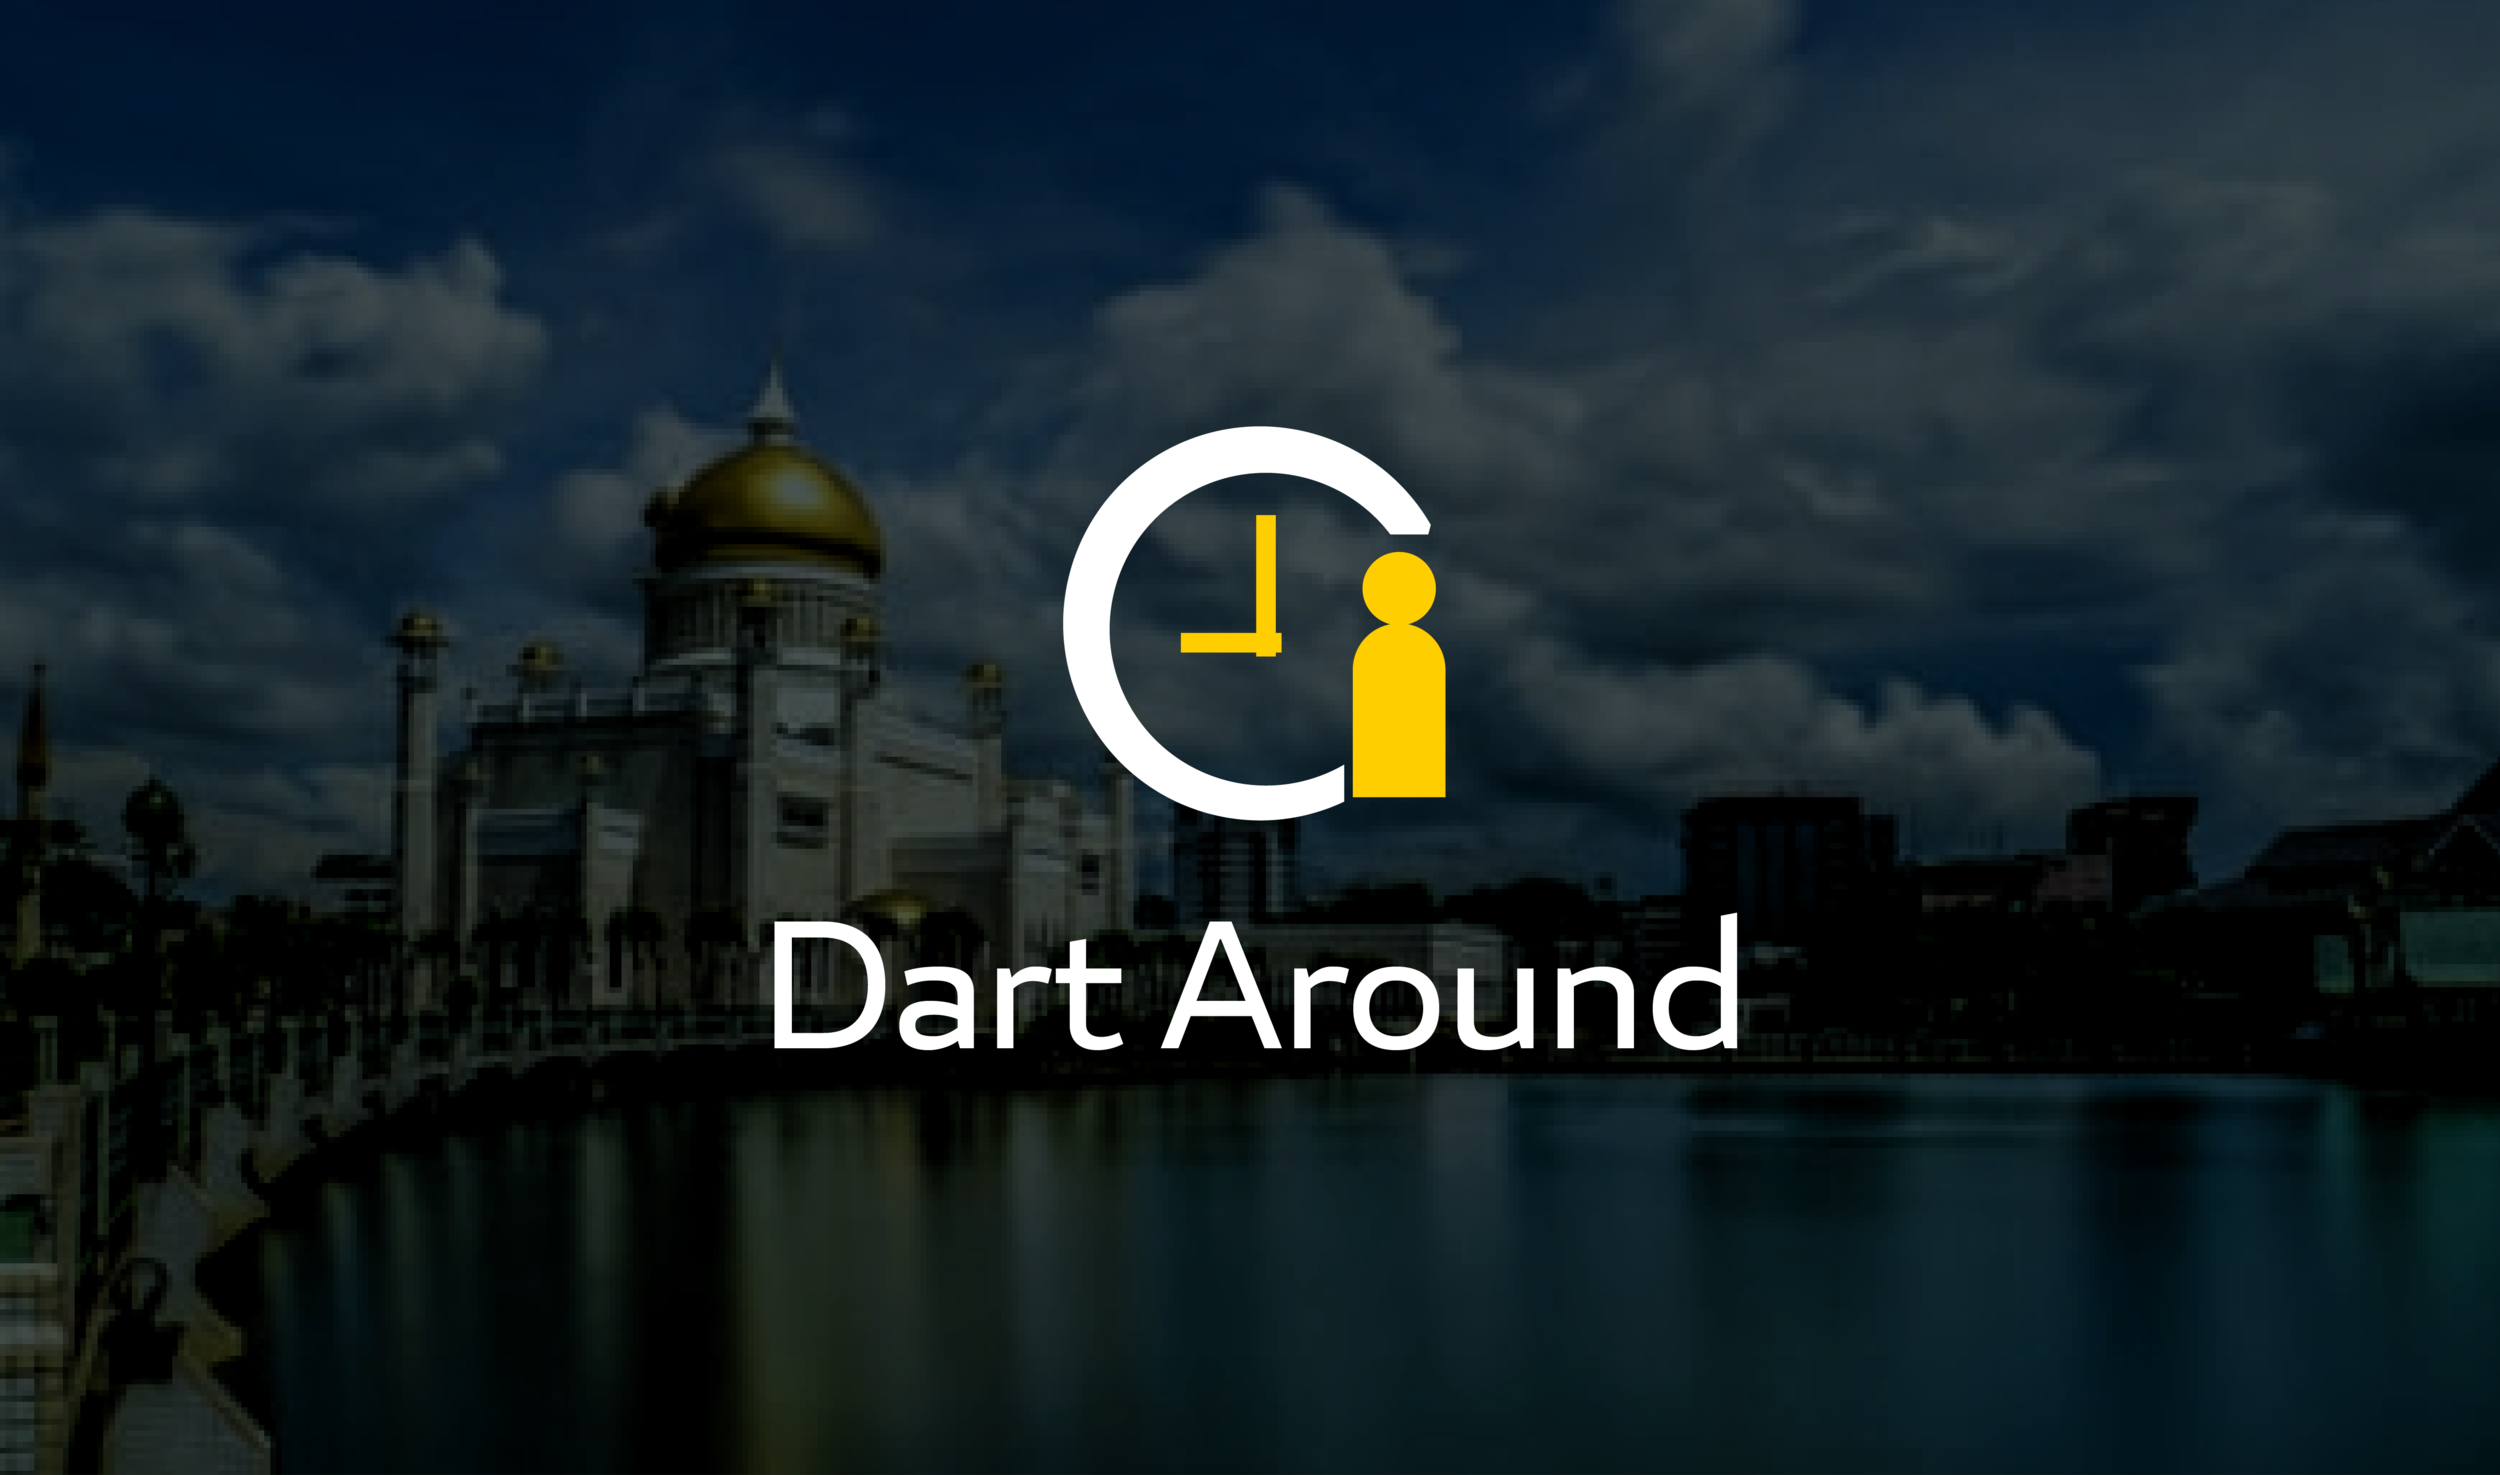 DART AROUND - Rental. Car & Driver by the hour.Price are confirmed upon booking with unlimited number of stops. The price is determined by the duration and the final drop off location.Booking requires at least 30 mins in advance